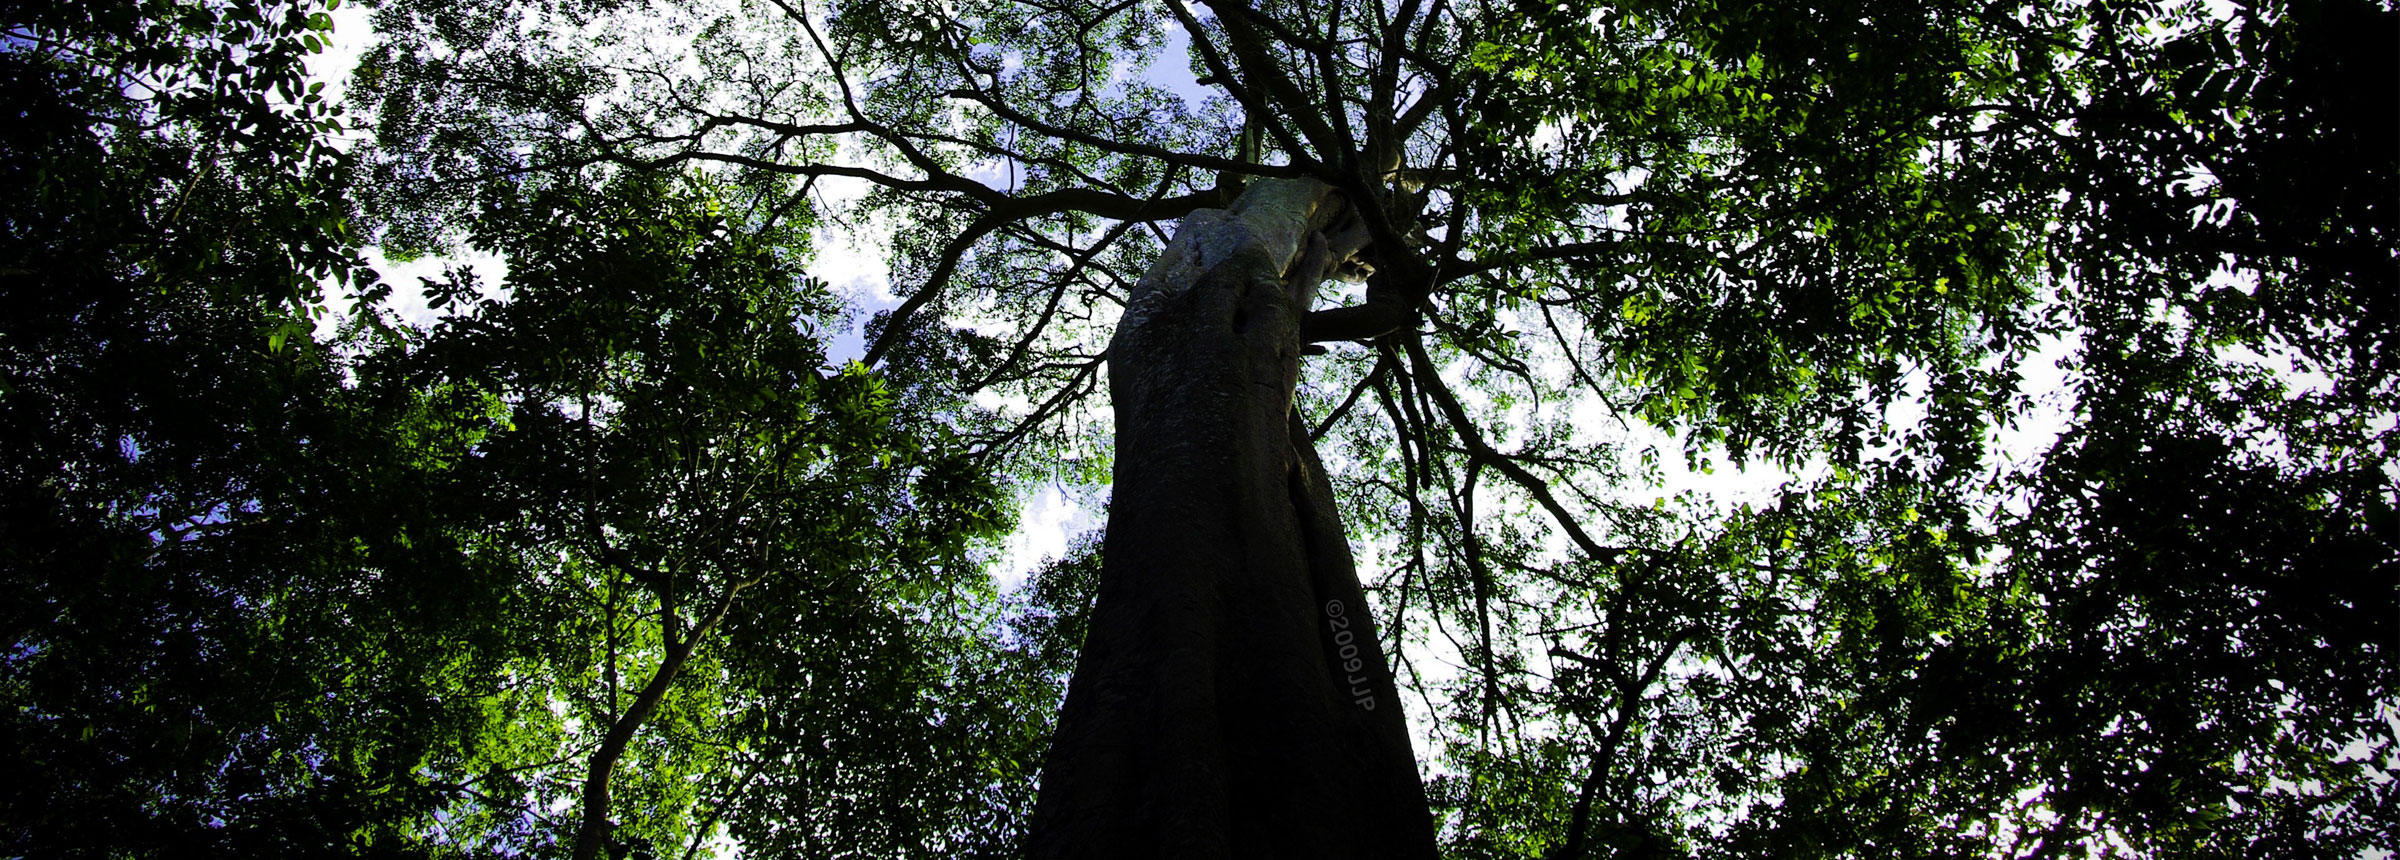 View of forest tree from below